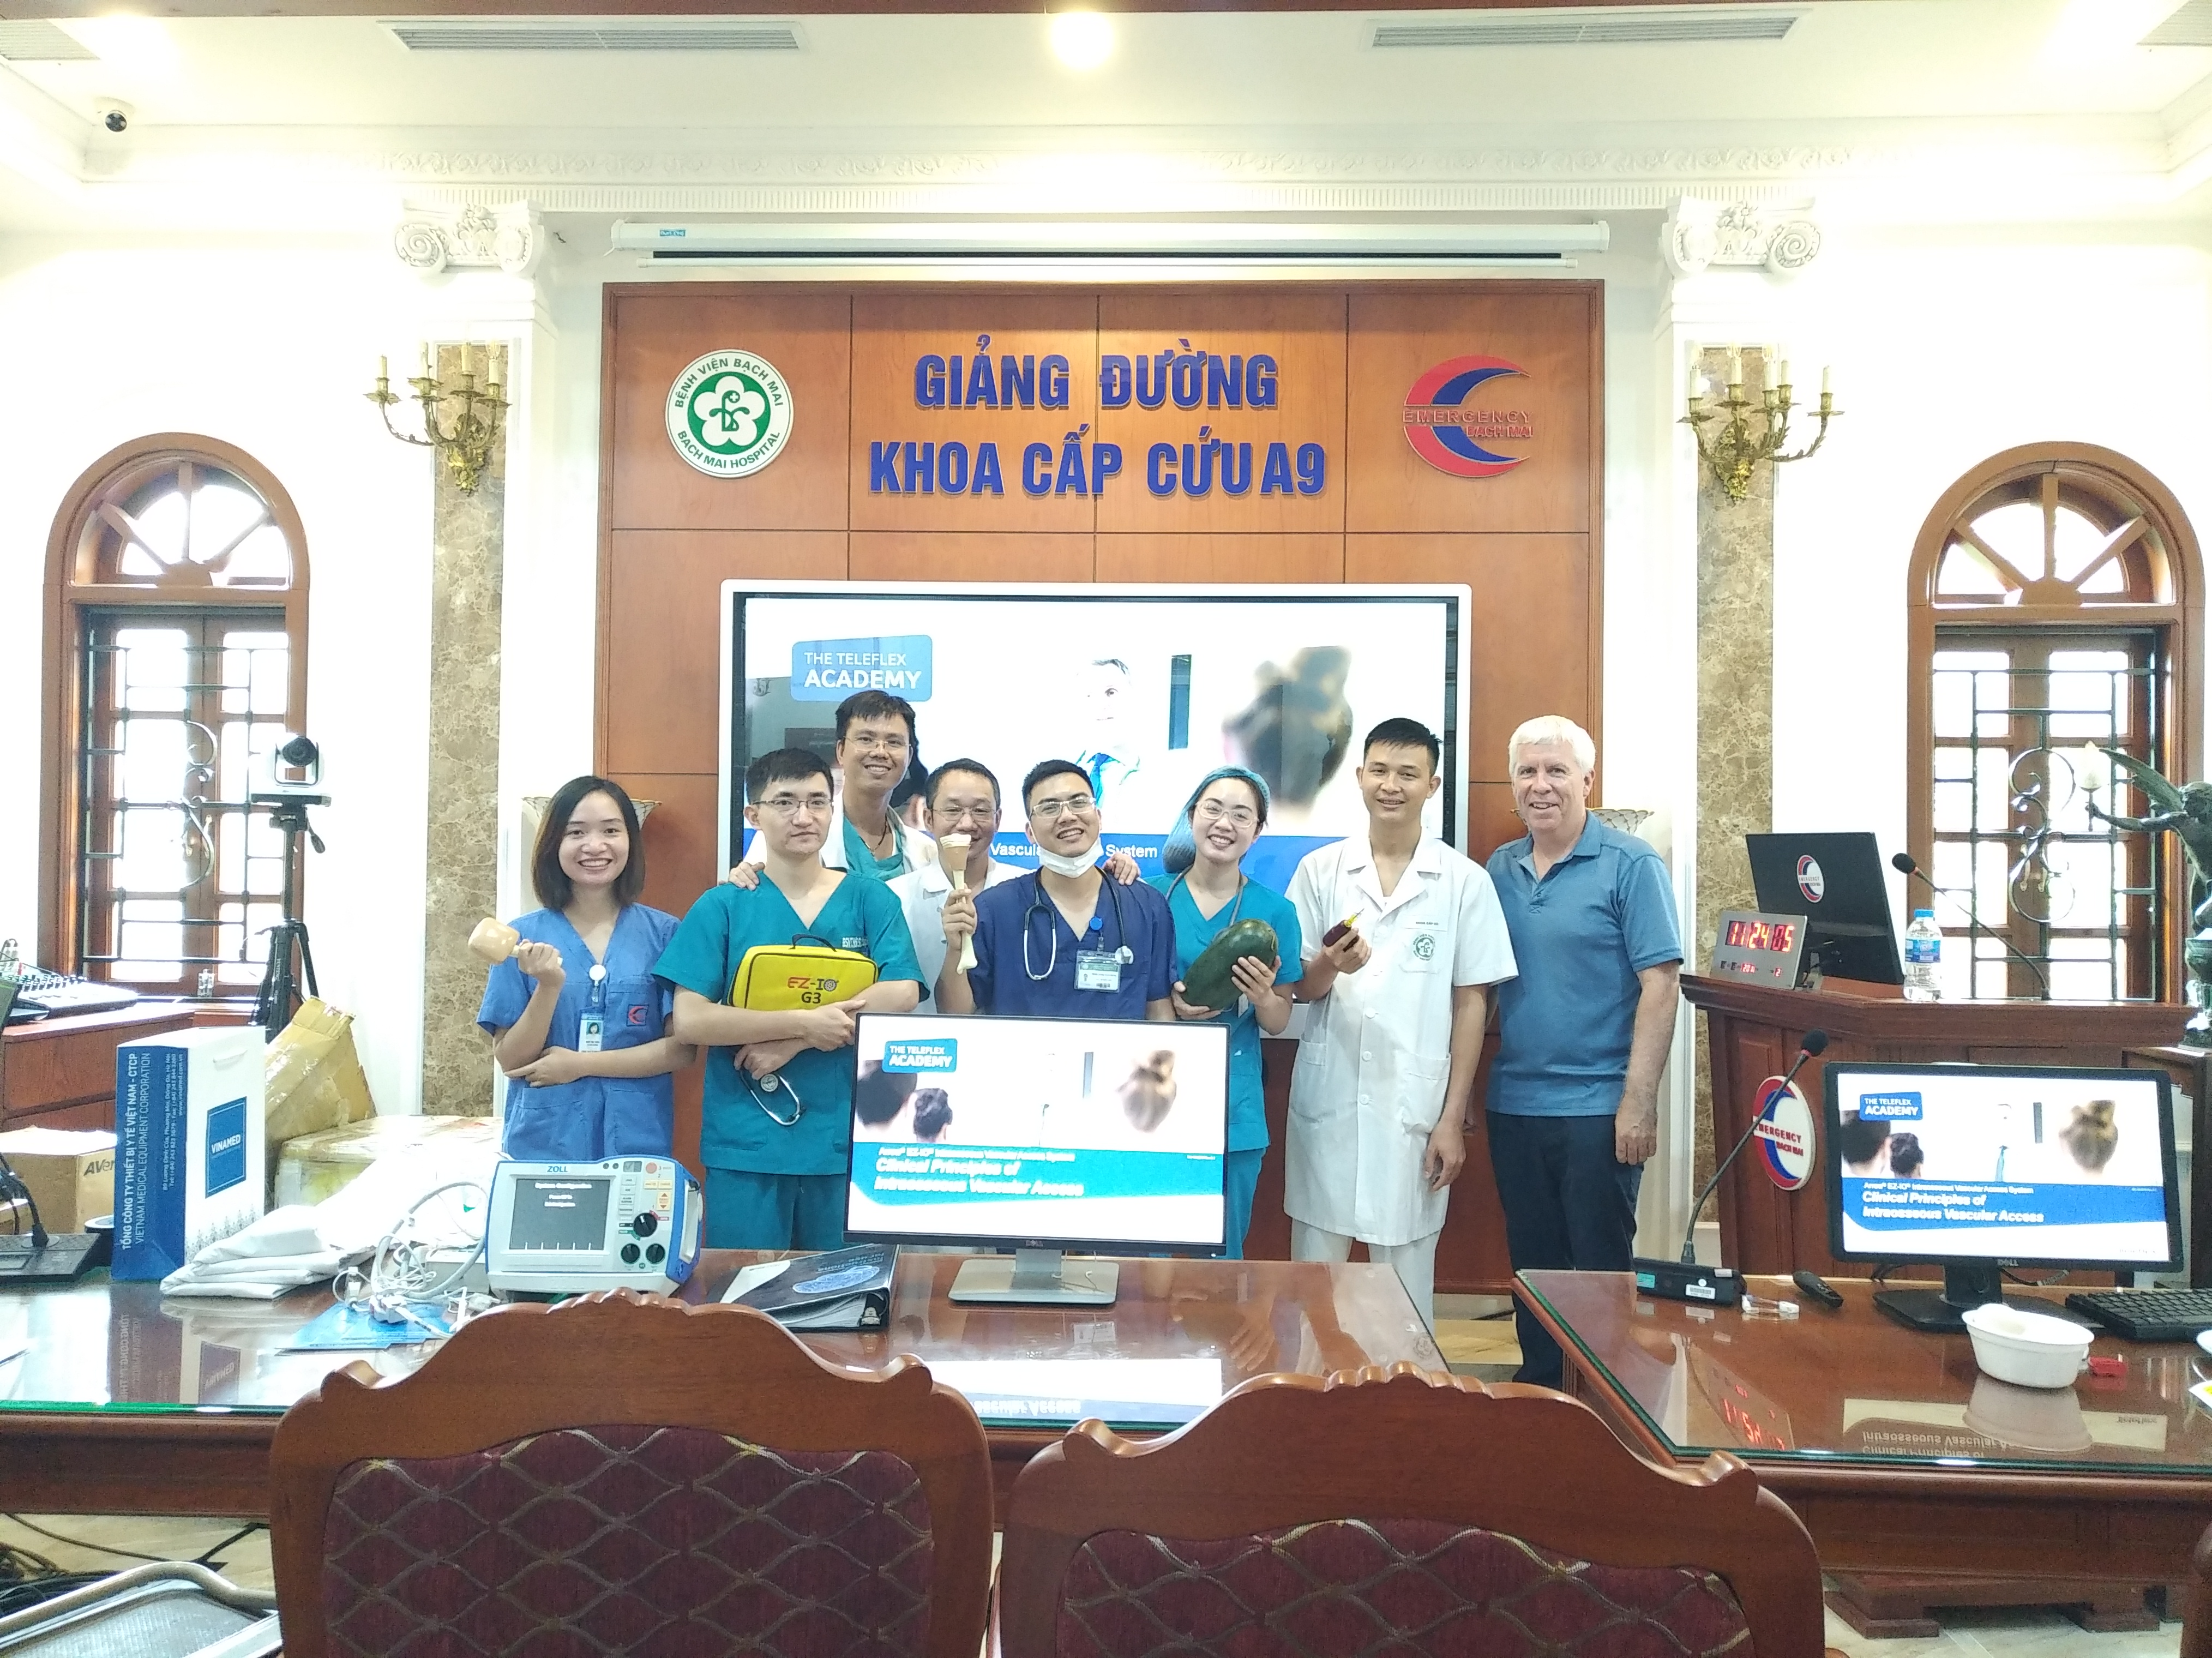 We are proud to support IO training at Bach Mai Hospital in Hanoi, Vietnam with our donation of EZ-IO equipment